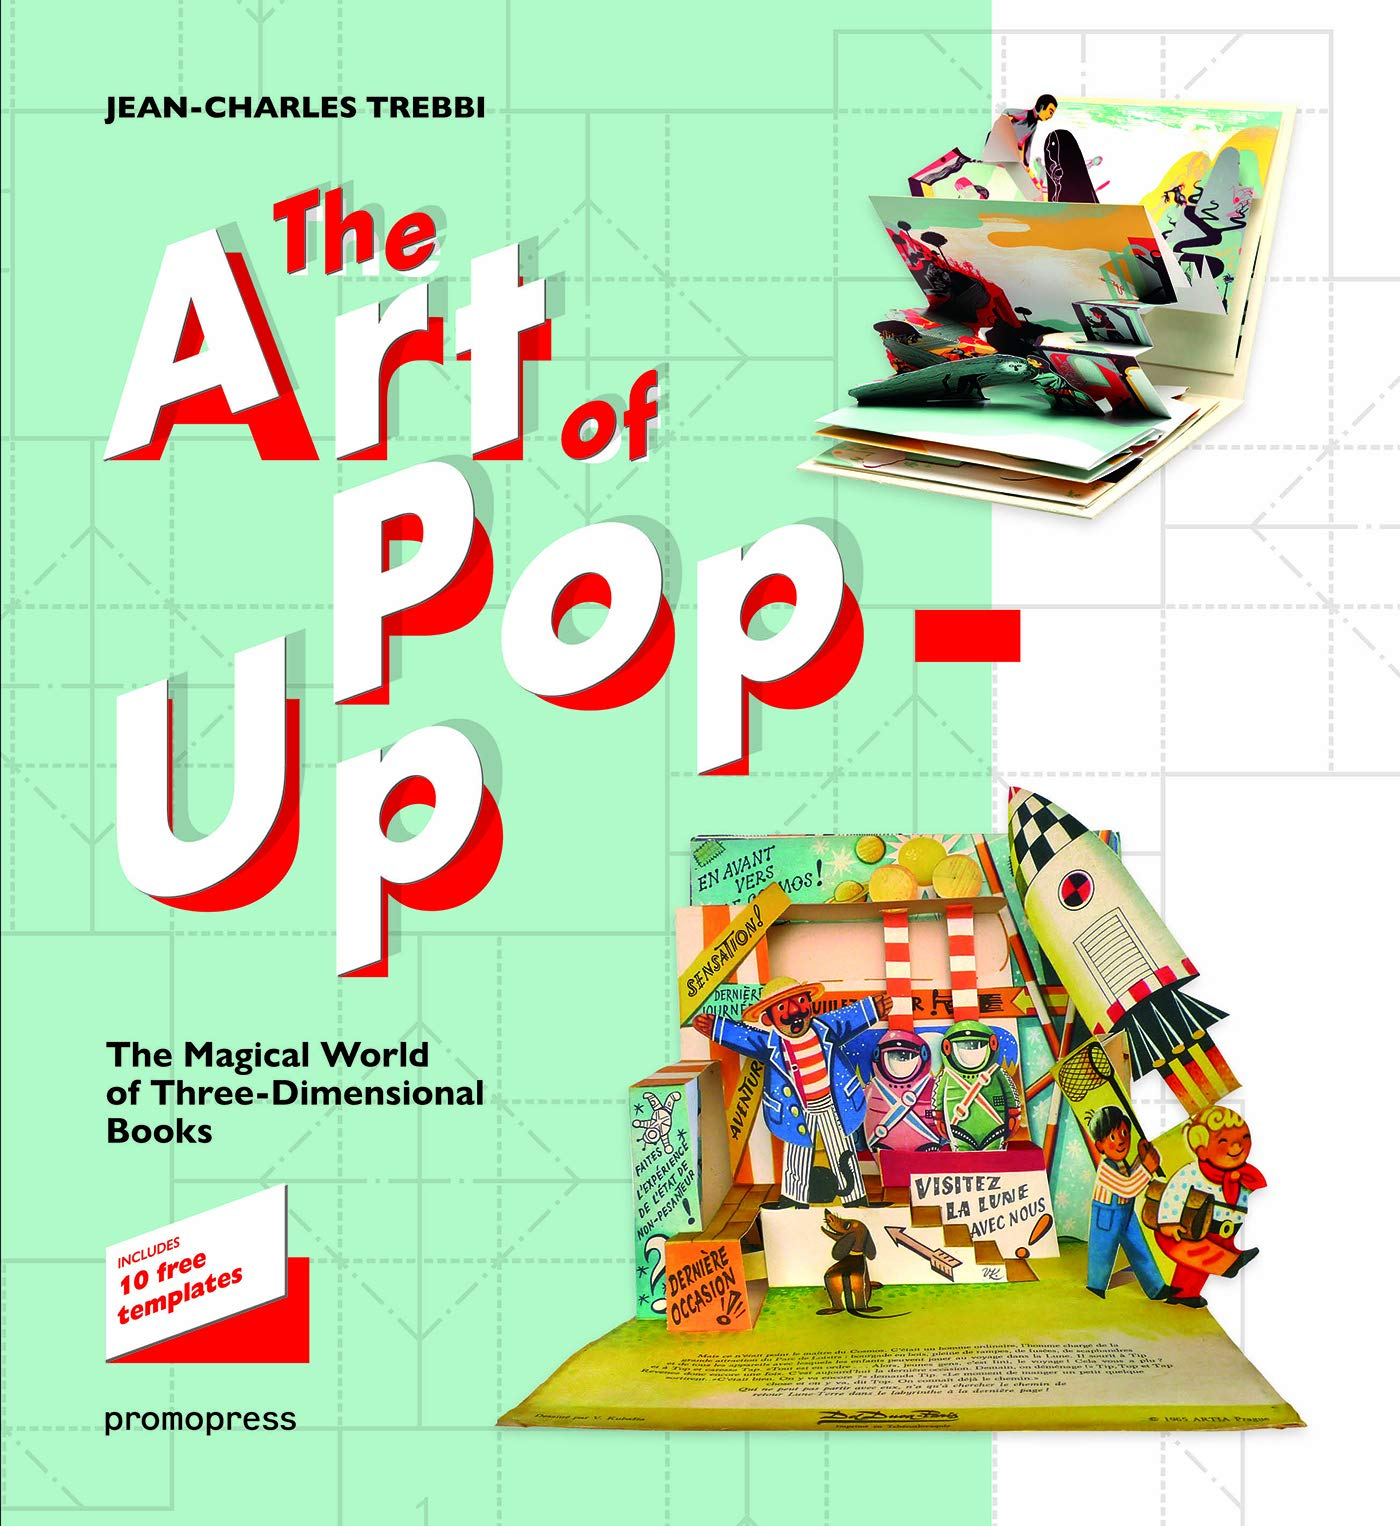 The Art of Pop-Up: Amazon.co.uk: Jean-Charles Trebbi: 9788416851263: Books